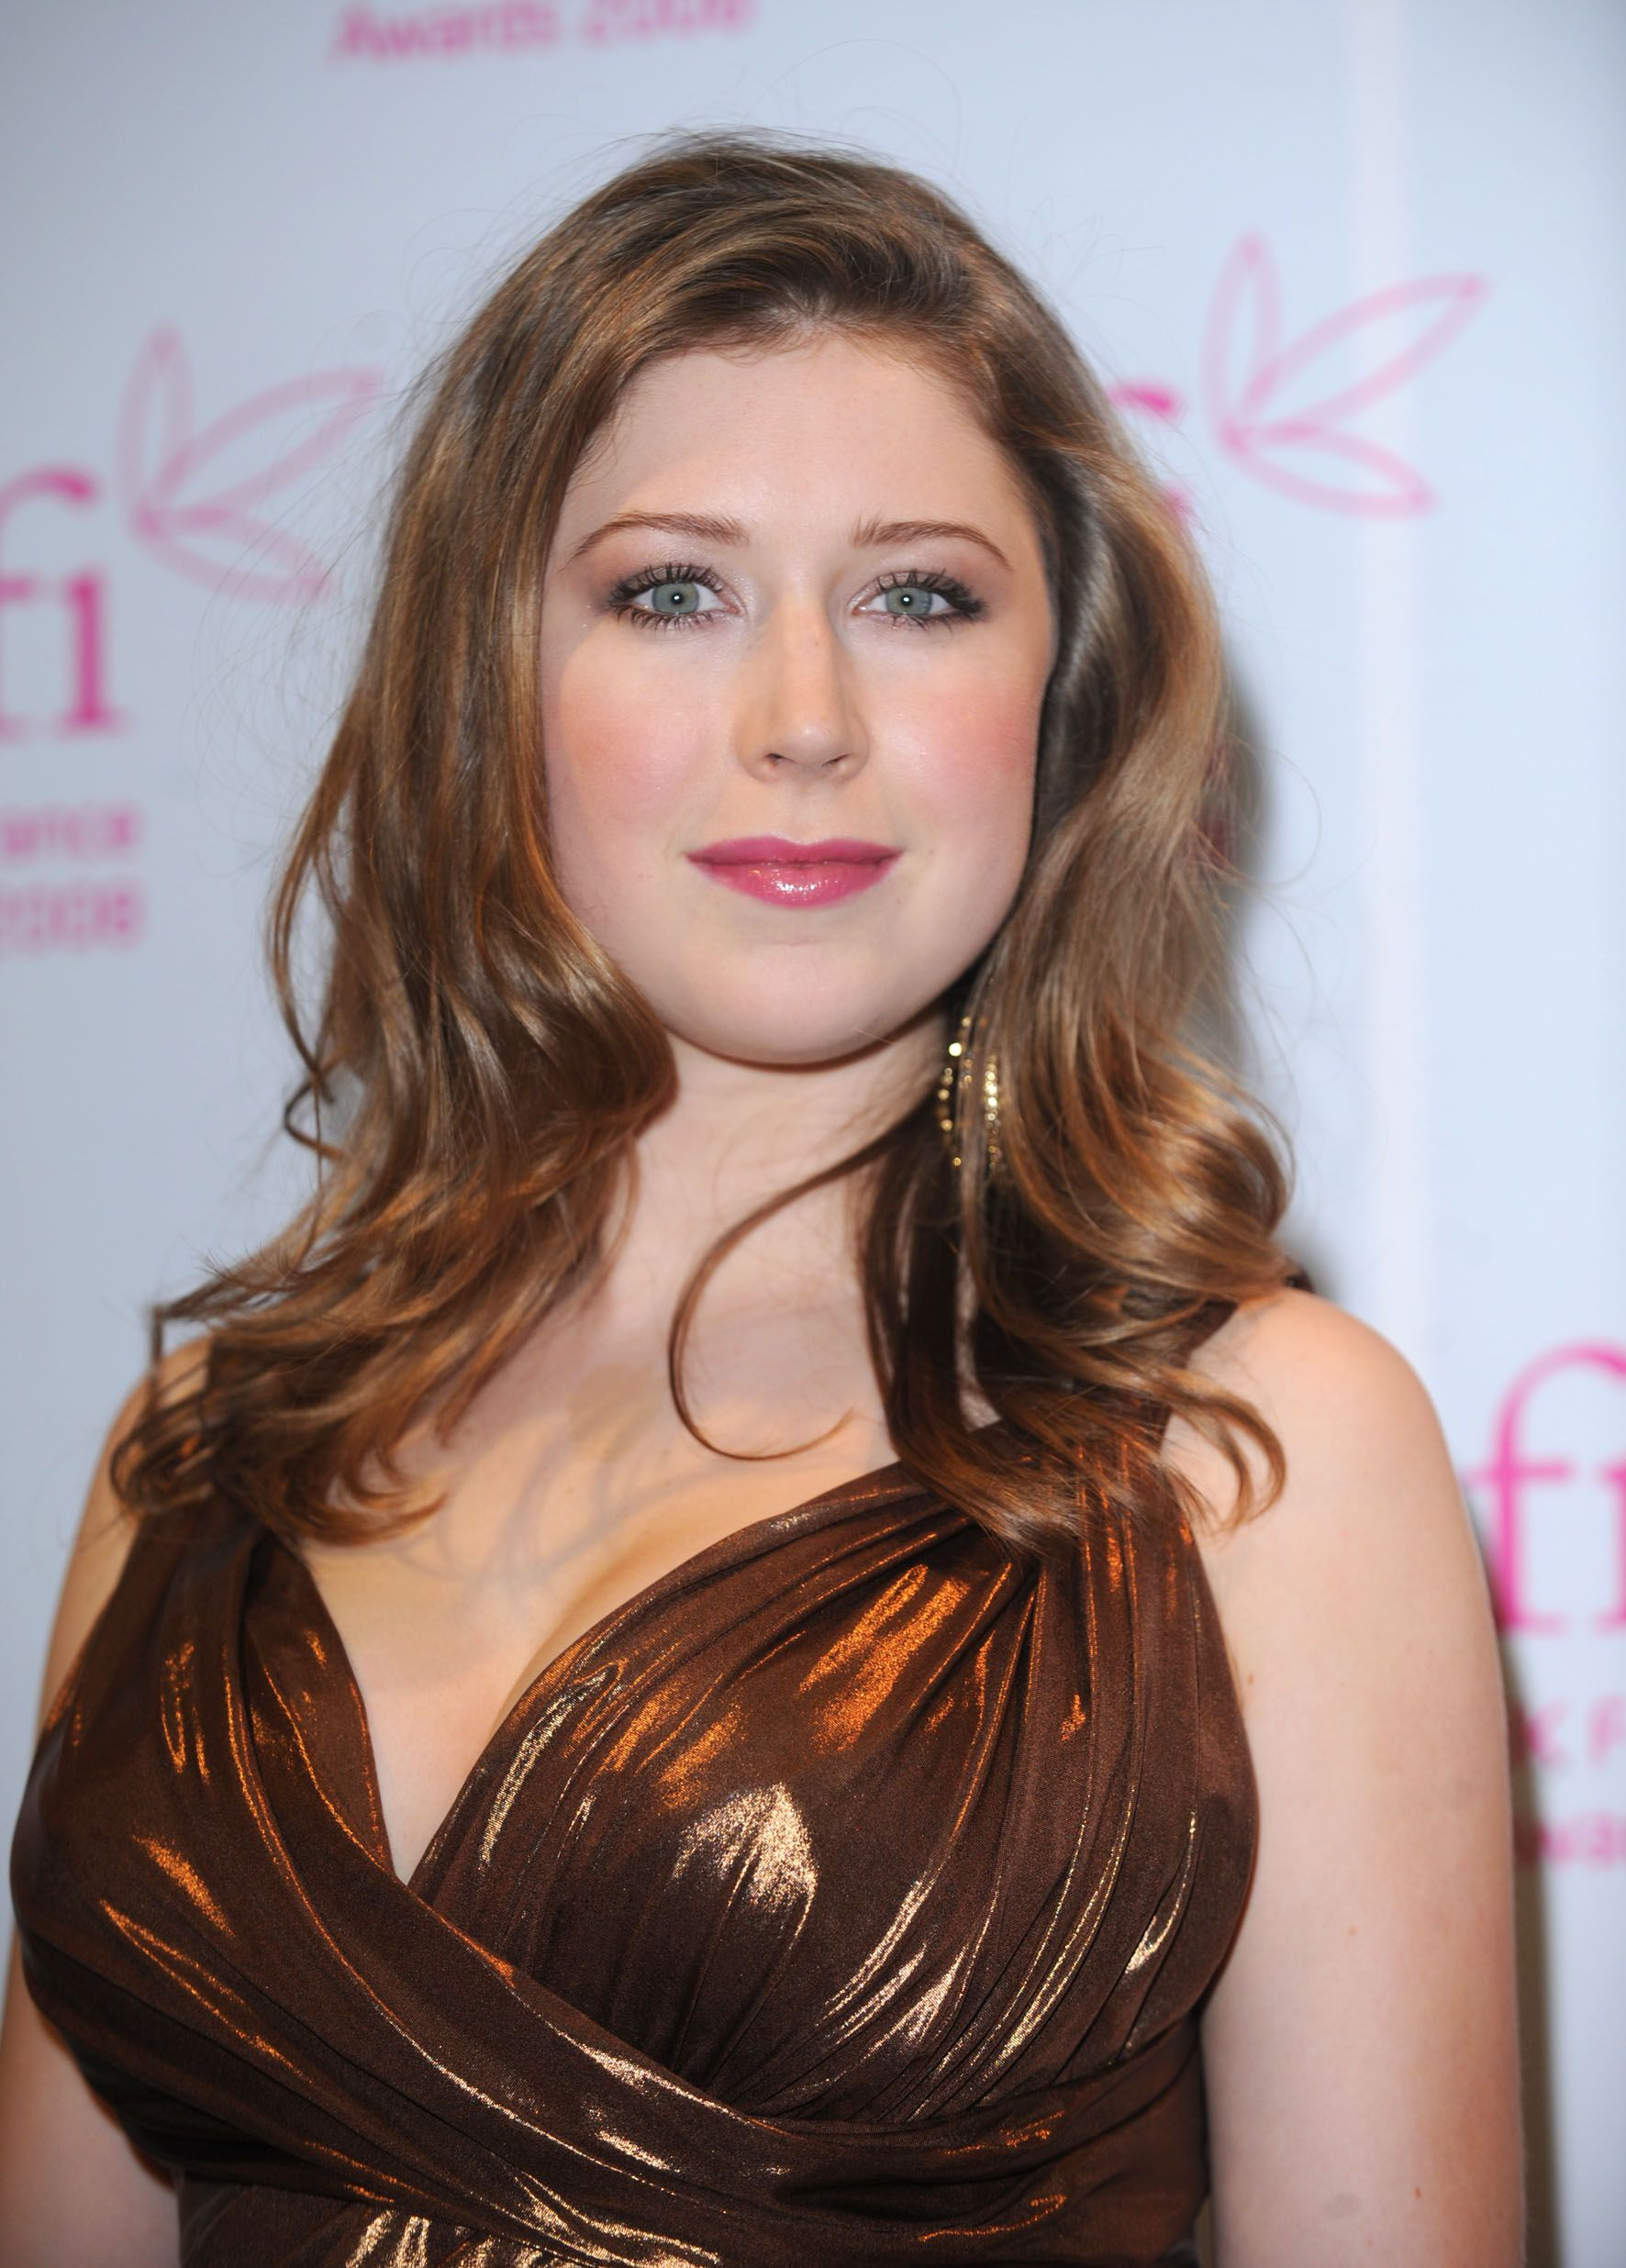 Assured, what hayley westenra nude pics likely. Most